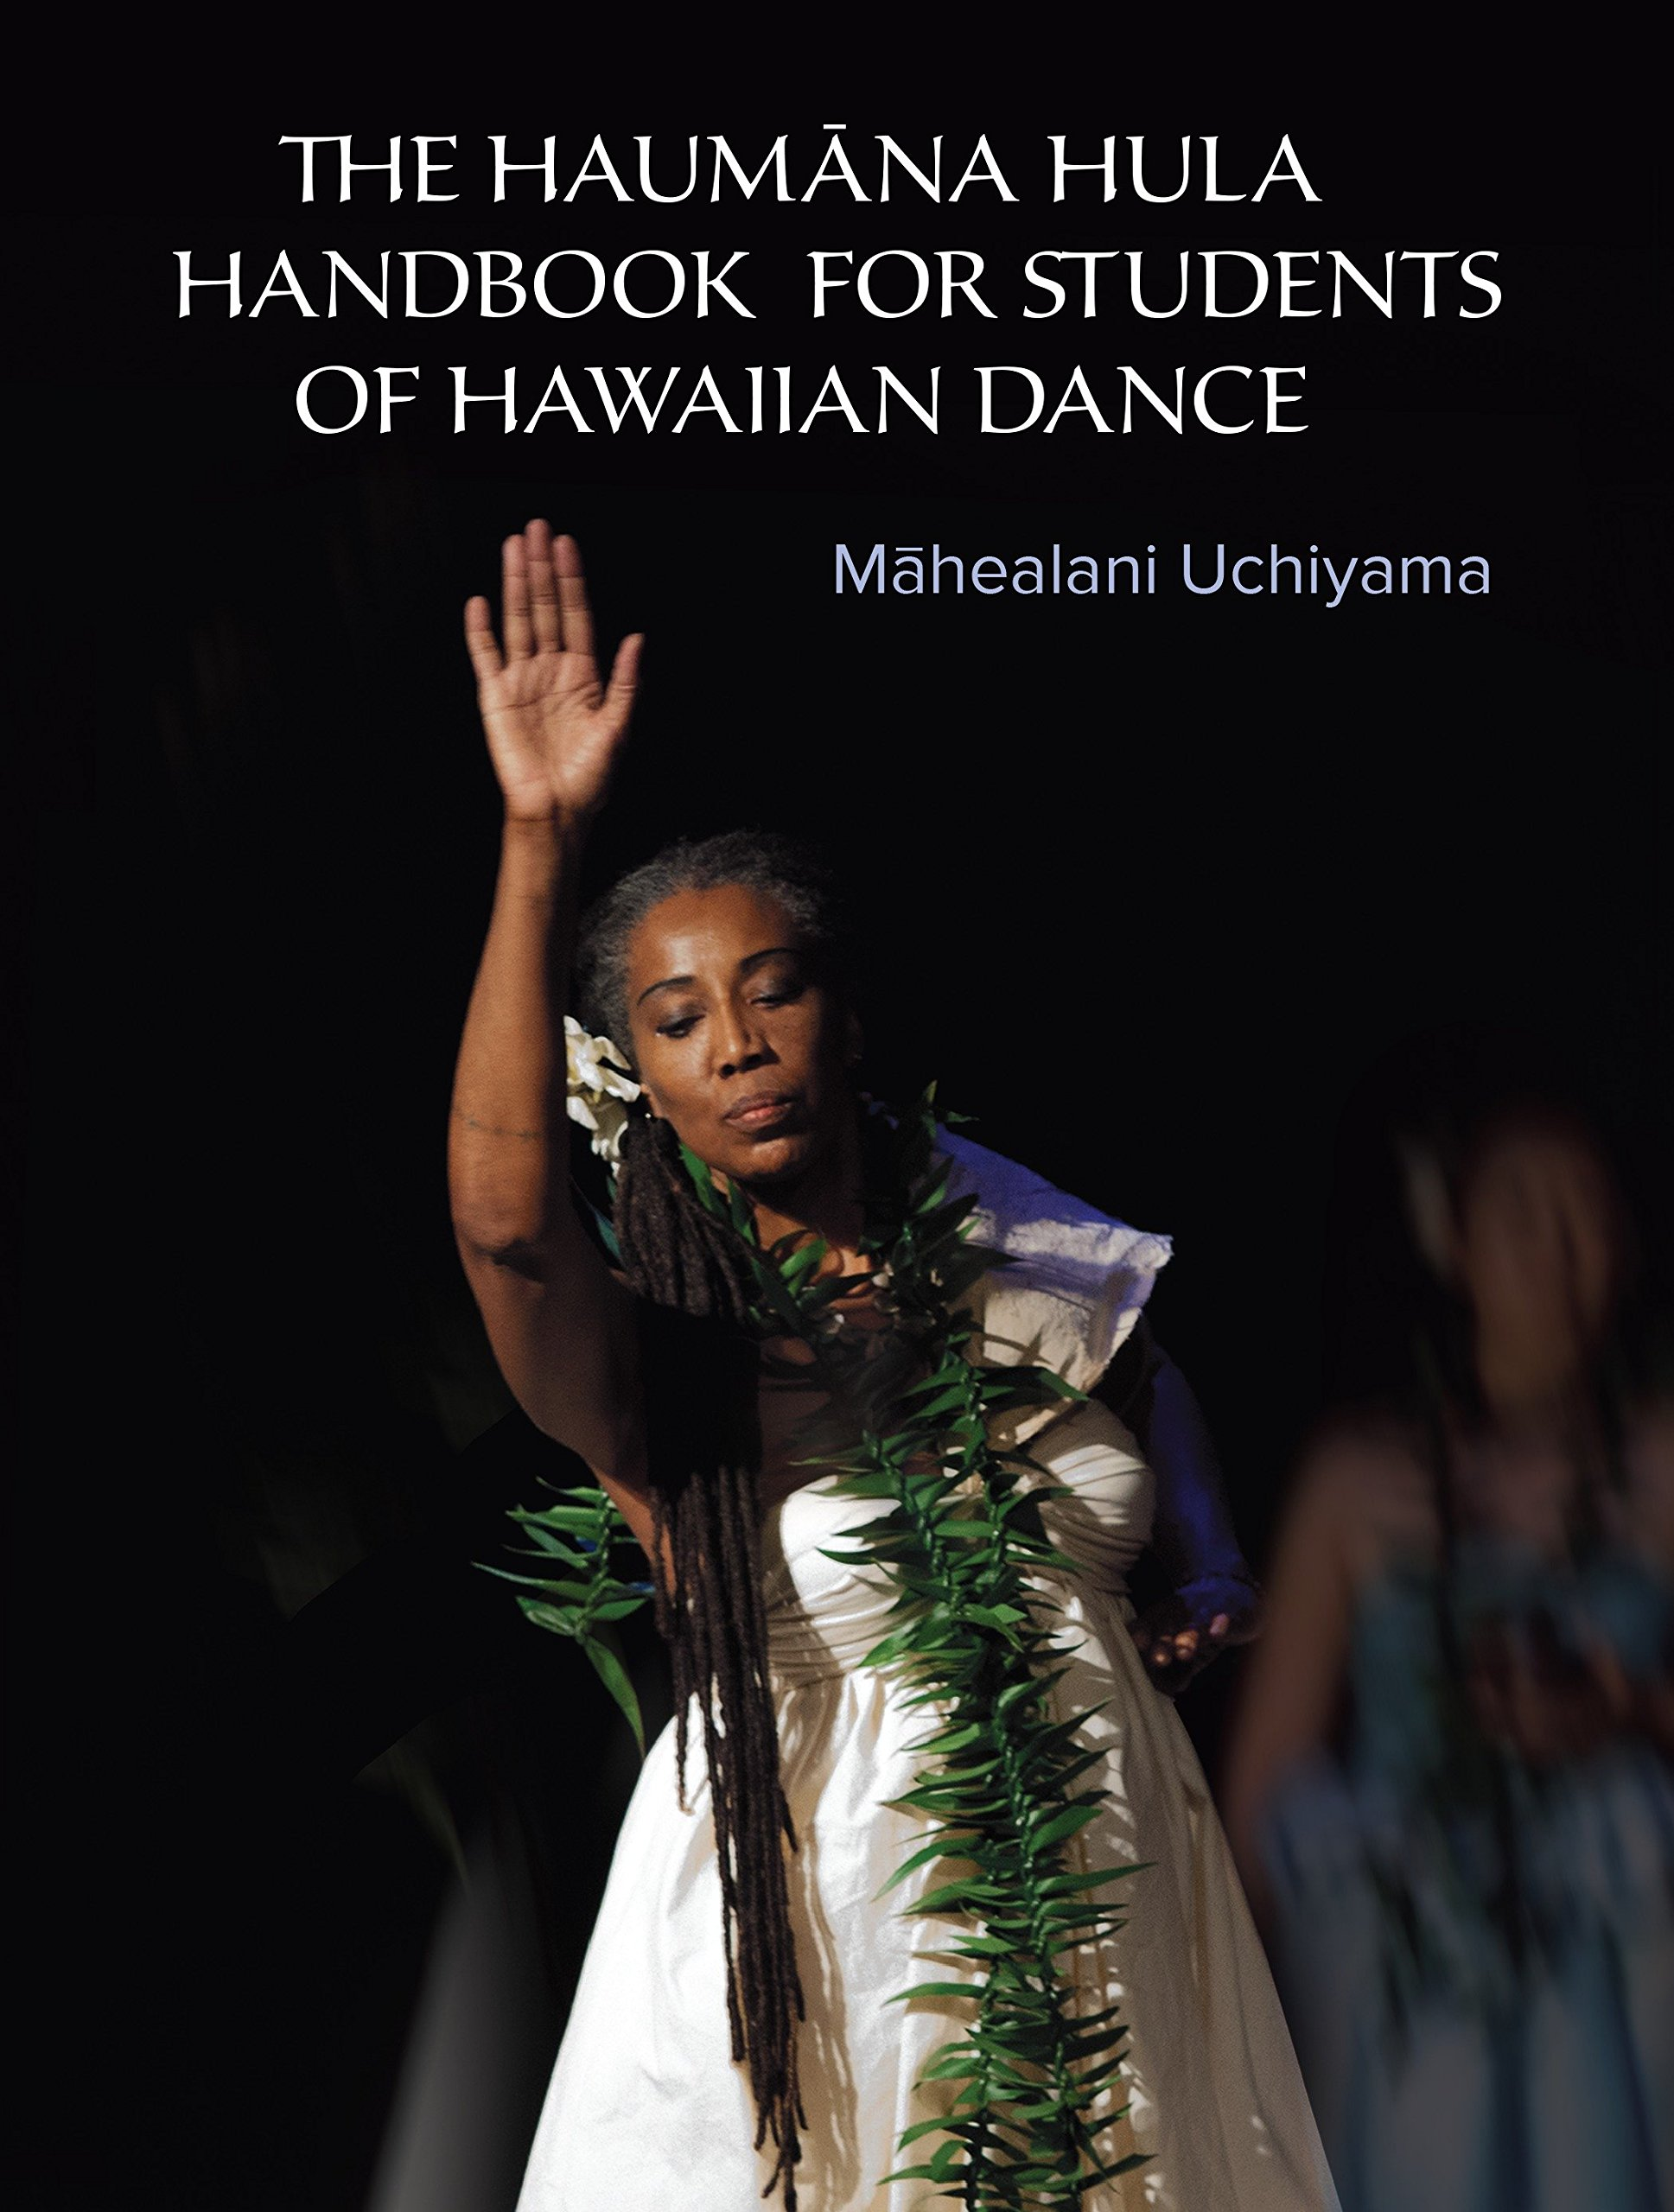 (2016) A great resource for students of traditional Hawaiian dance, this beautiful handbook filled with archival photographs covers the origins, language, etiquette, ceremonies, and the spiritual culture of hula. Hula, the indigenous dance of Hawai'i, preserves significant aspects of Native Hawaiian culture with strong ties to health and spirituality. -